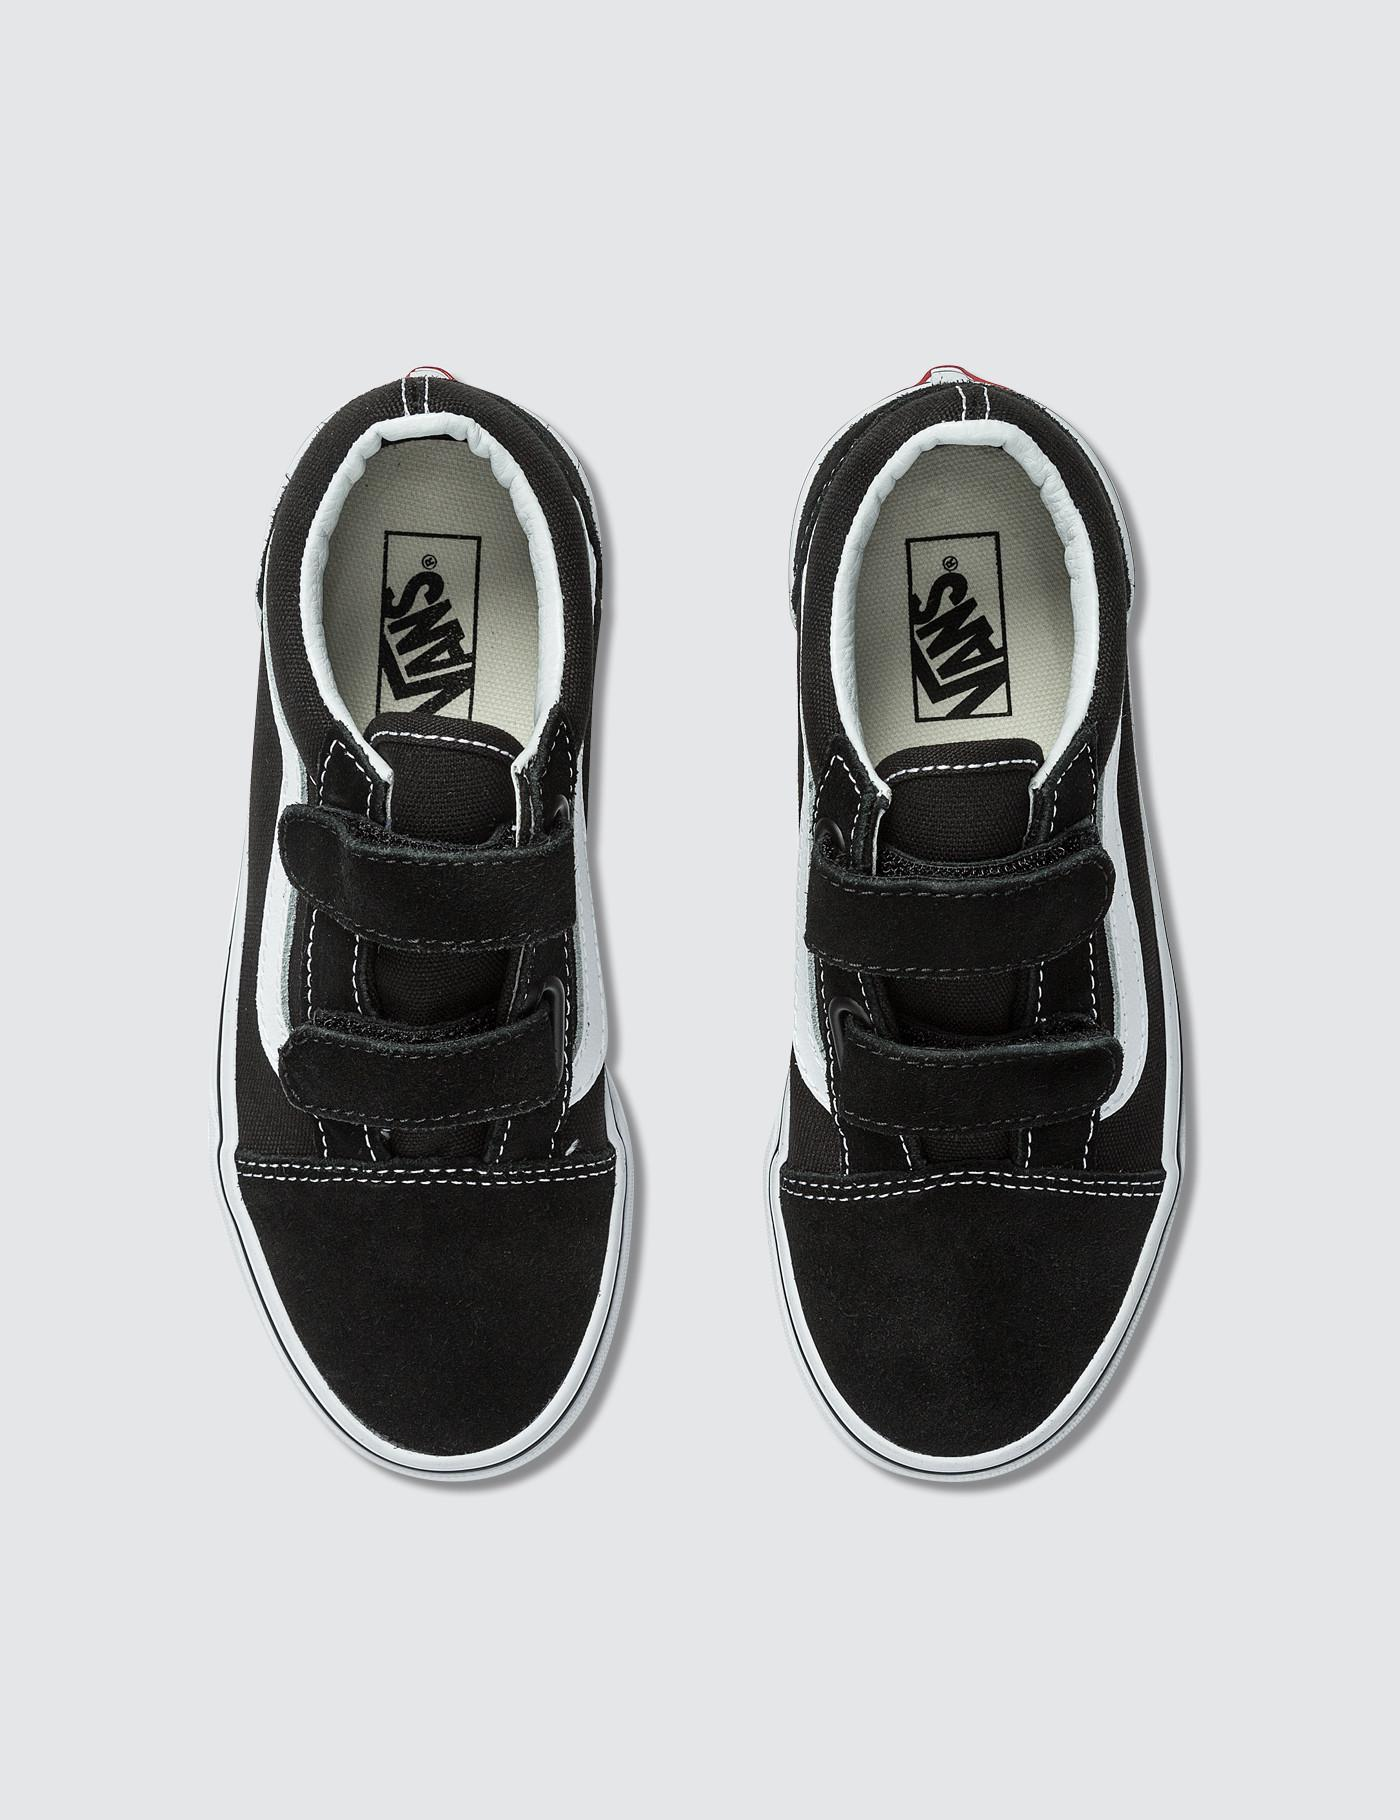 7ef414c8b2 Lyst - Vans Old Skool V in Black for Men - Save 30%